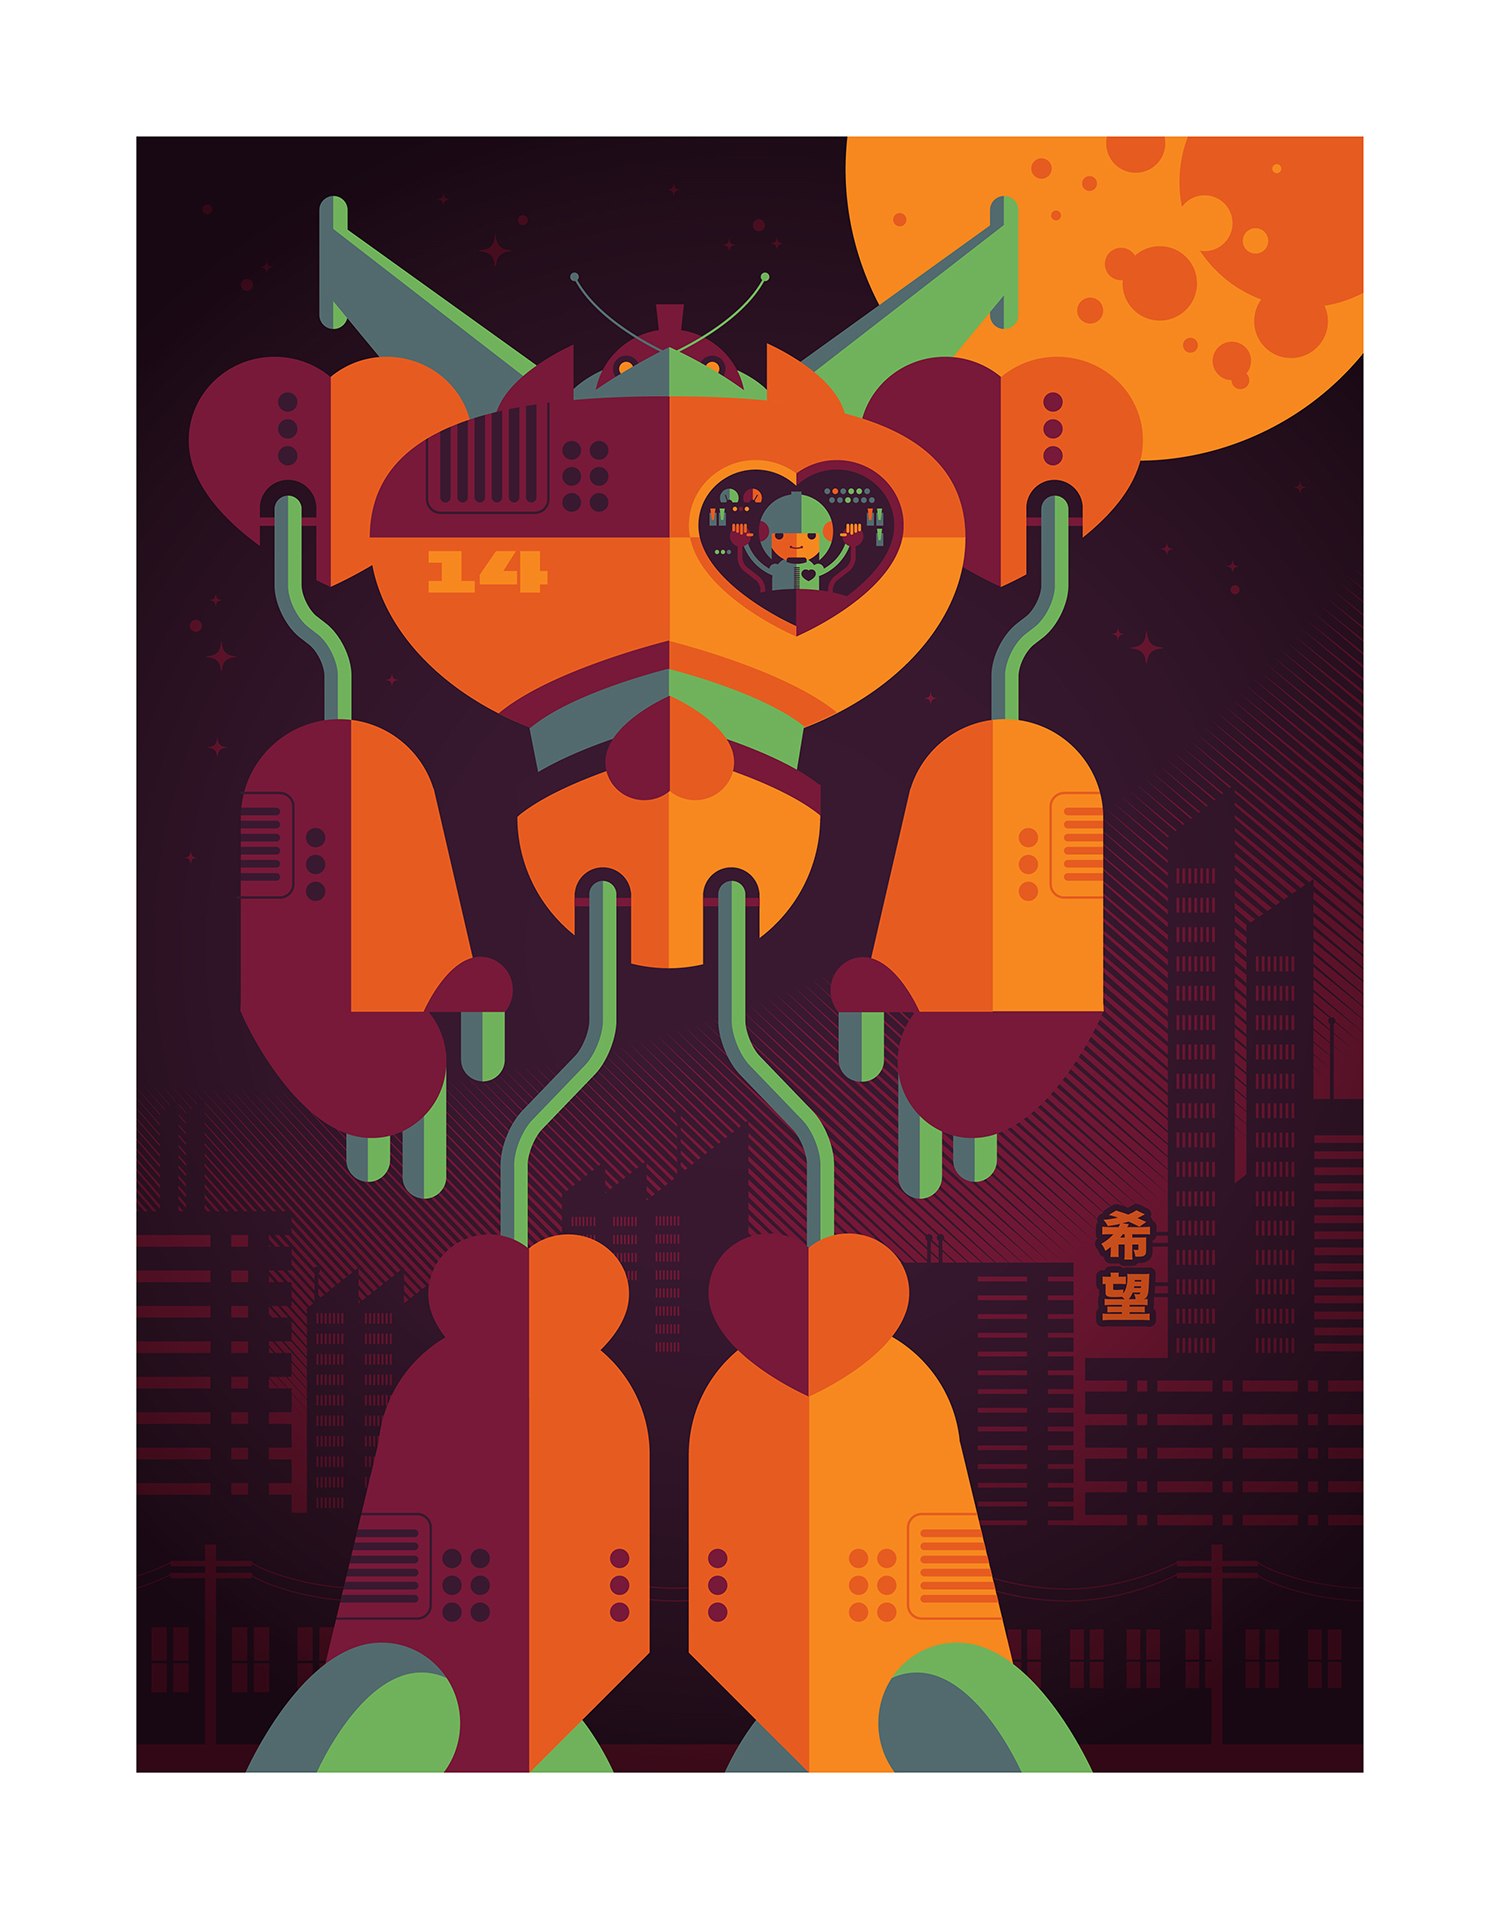 'A City's Hope' by Tom Whalen